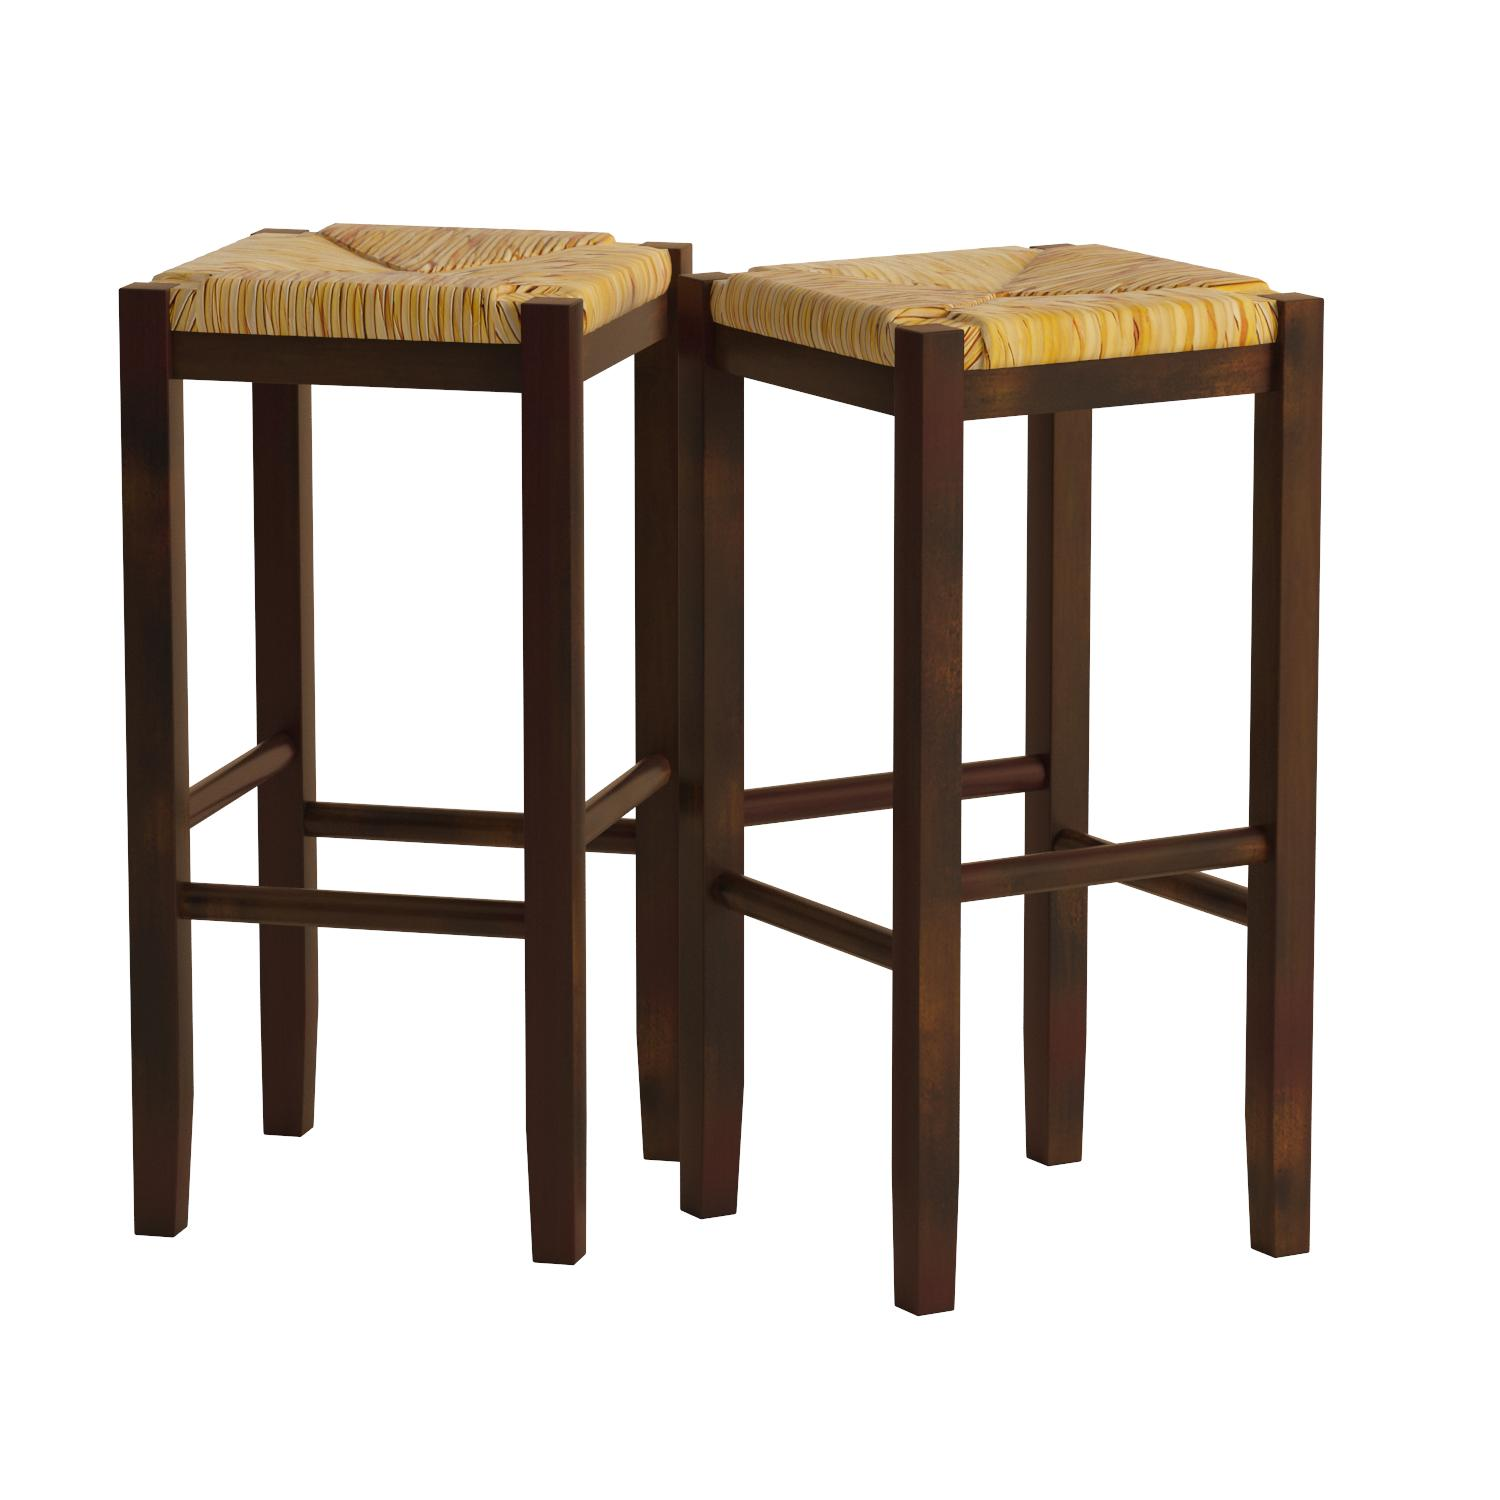 Amazoncom Winsome Wood 29 Inch Square Rush Seat Bar Stool, Set